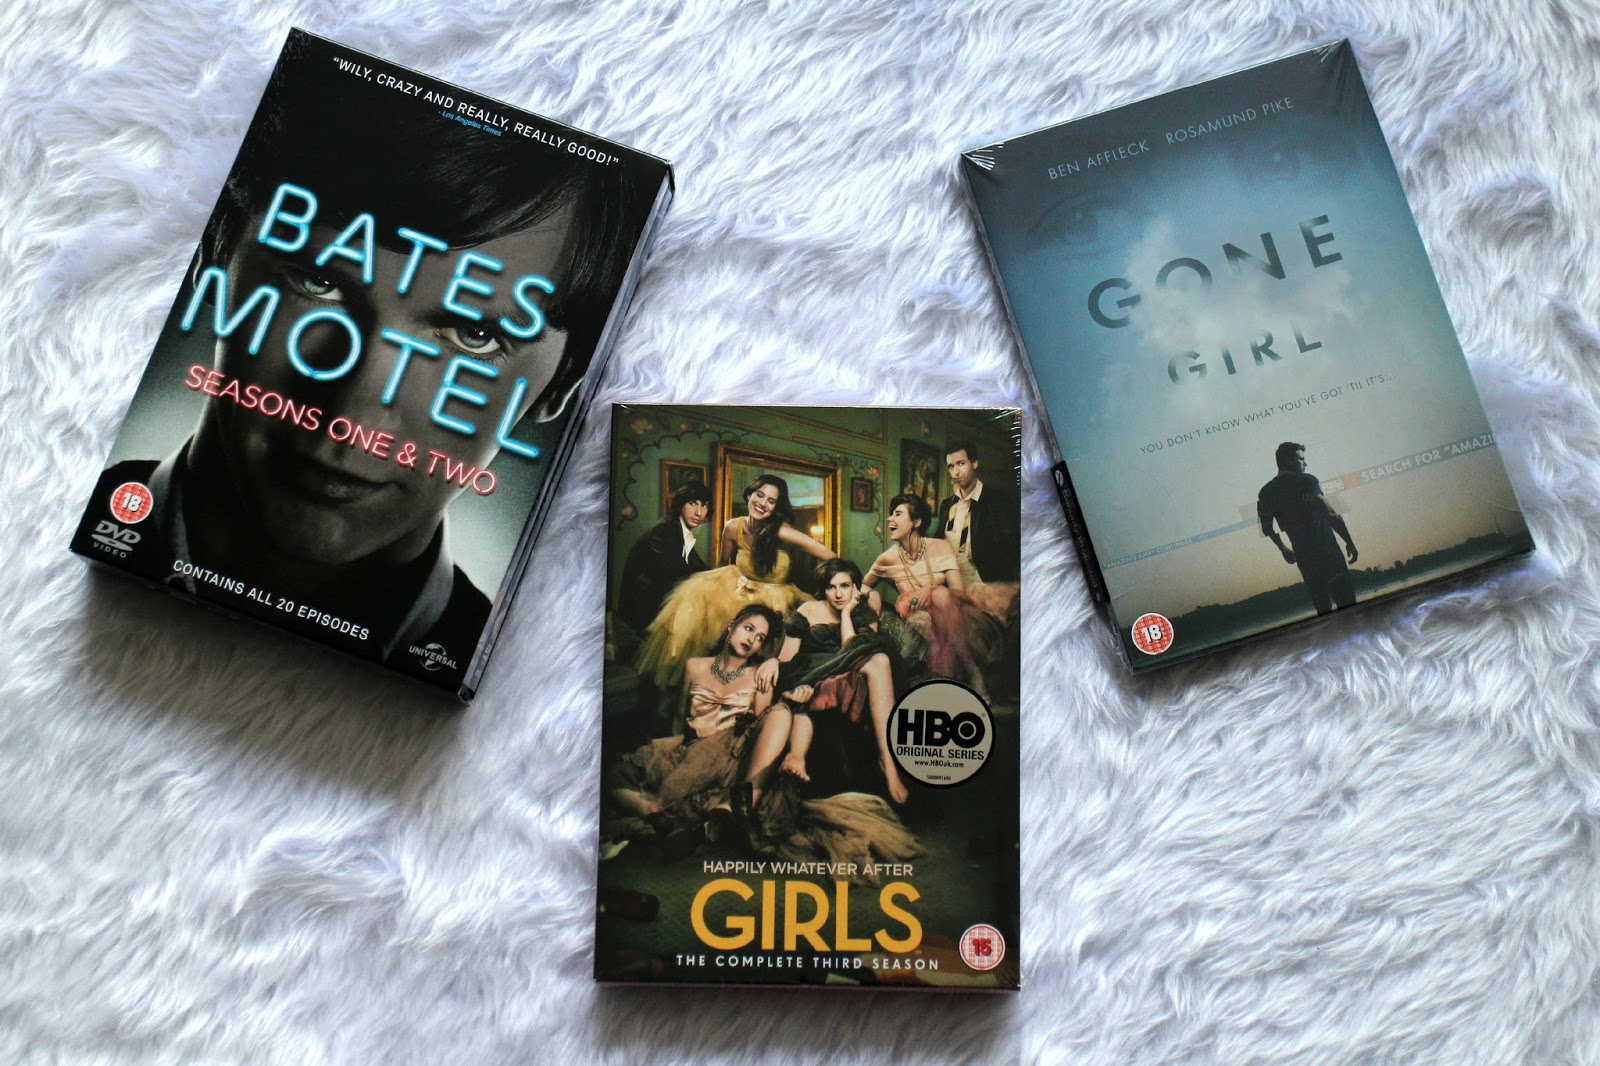 Bates Motel Girls Gone Girl DVDs